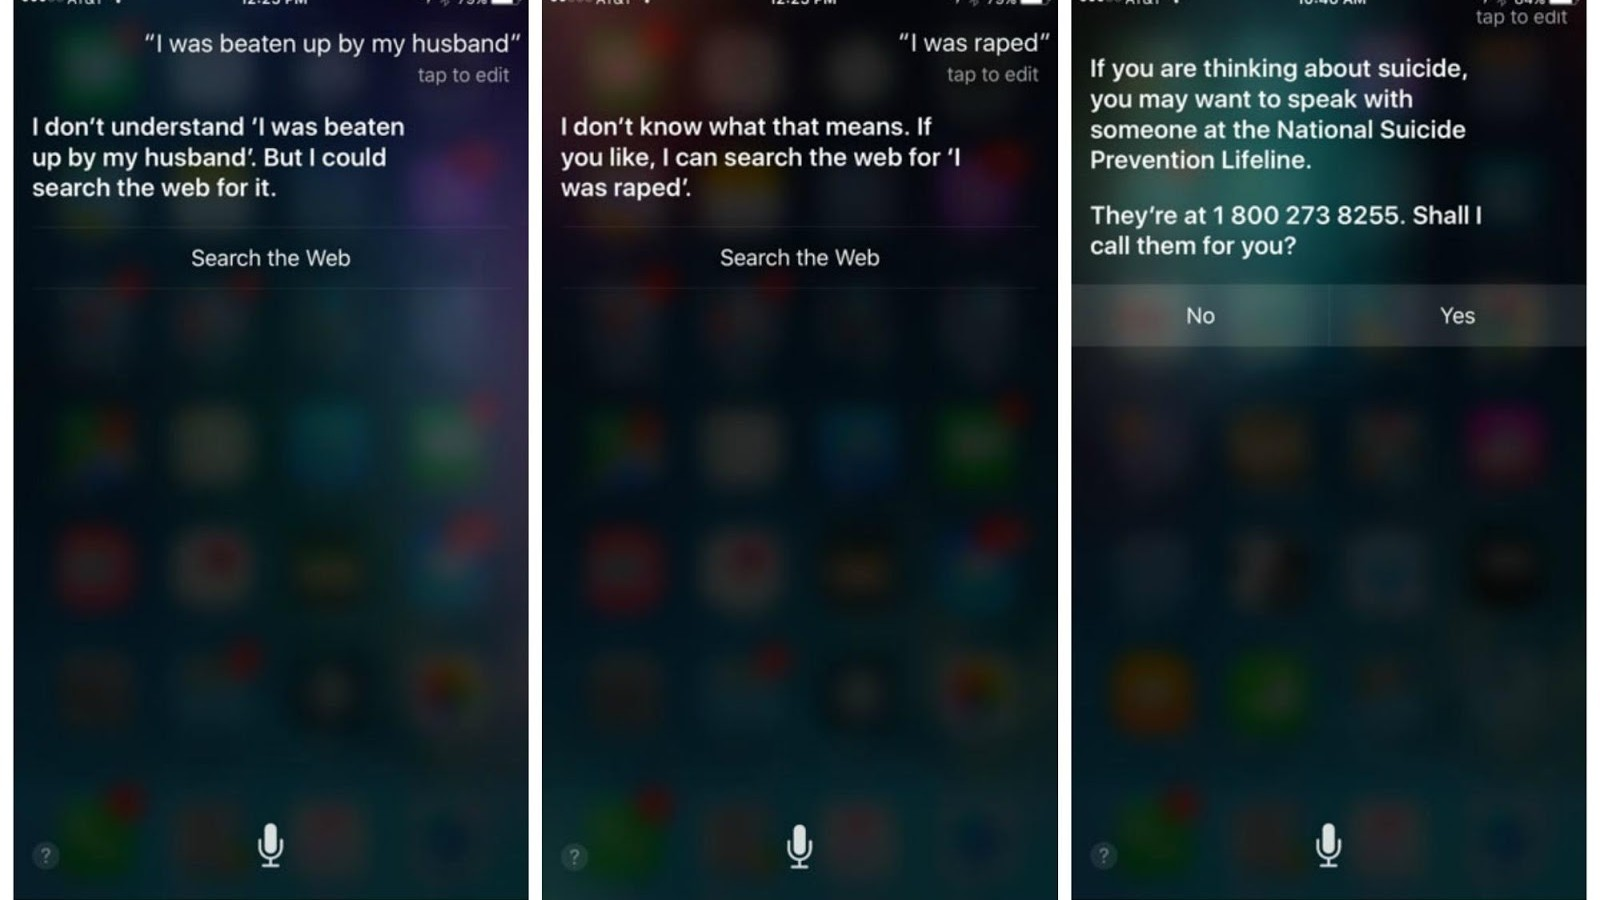 5,000 People Signed a Petition to Get Siri to Provide Sexual Assault Resources